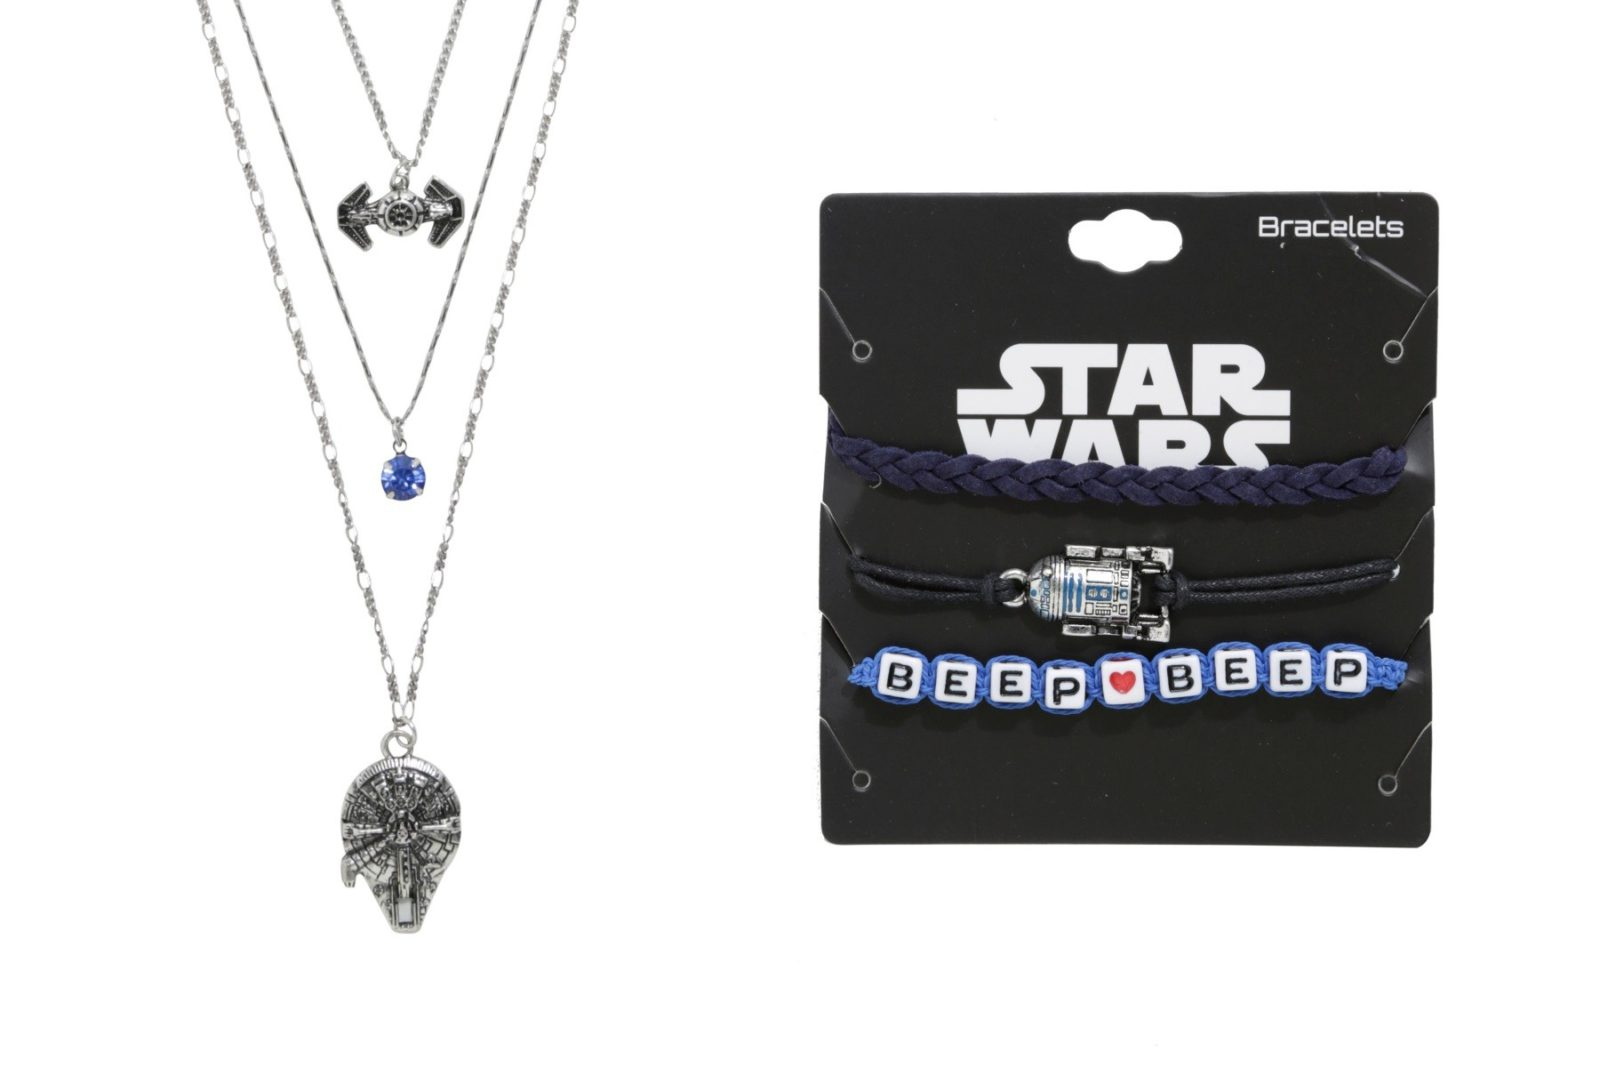 New Star Wars jewelry at Hot Topic